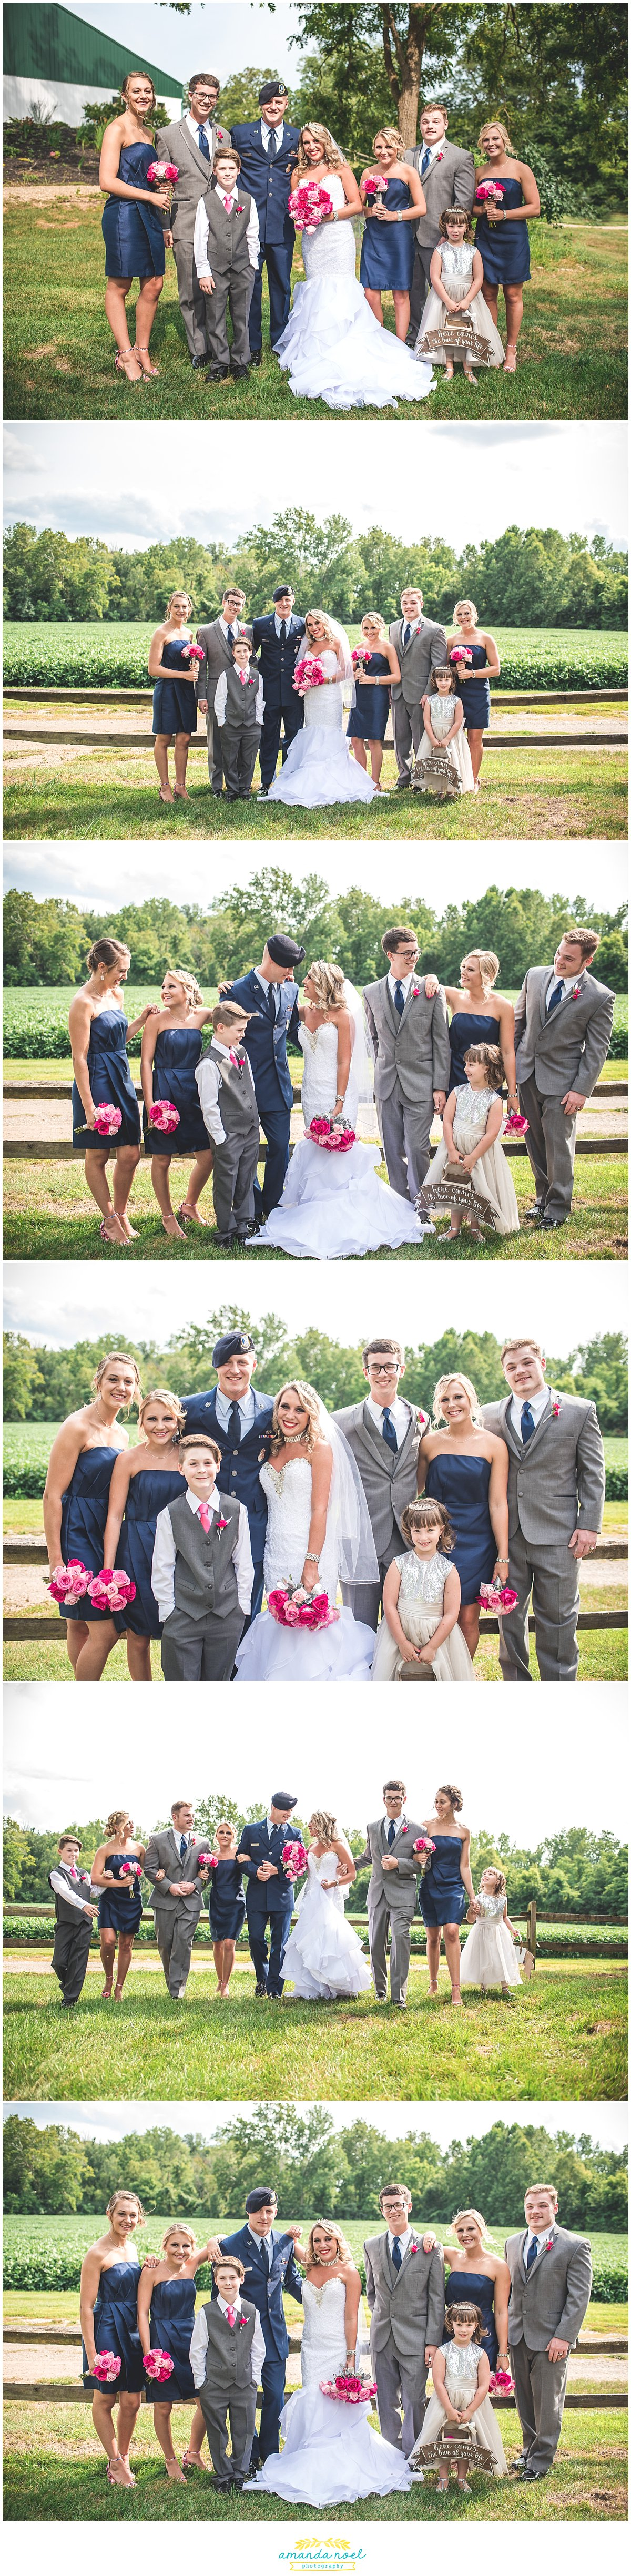 Springfield Ohio wedding party portraits